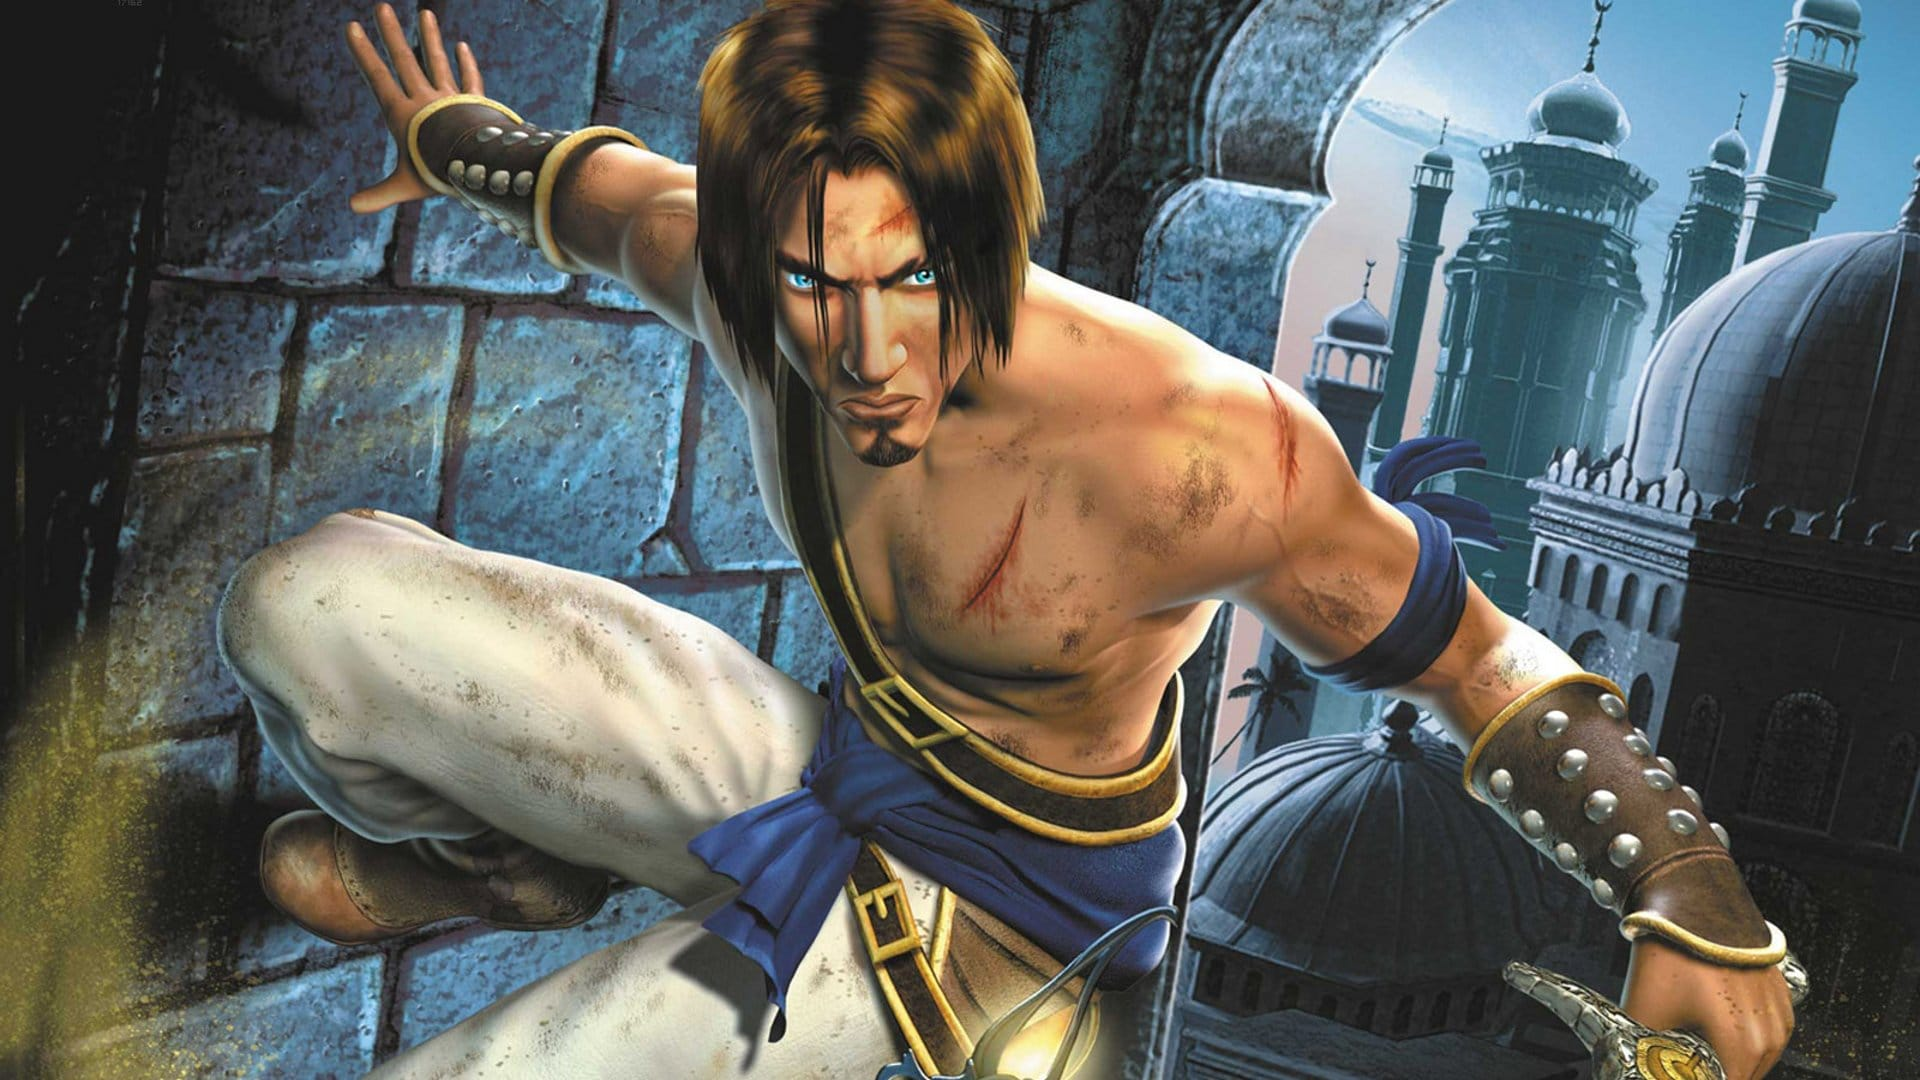 Prince Of Persia: The Sands Of Time - (C) Ubisoft